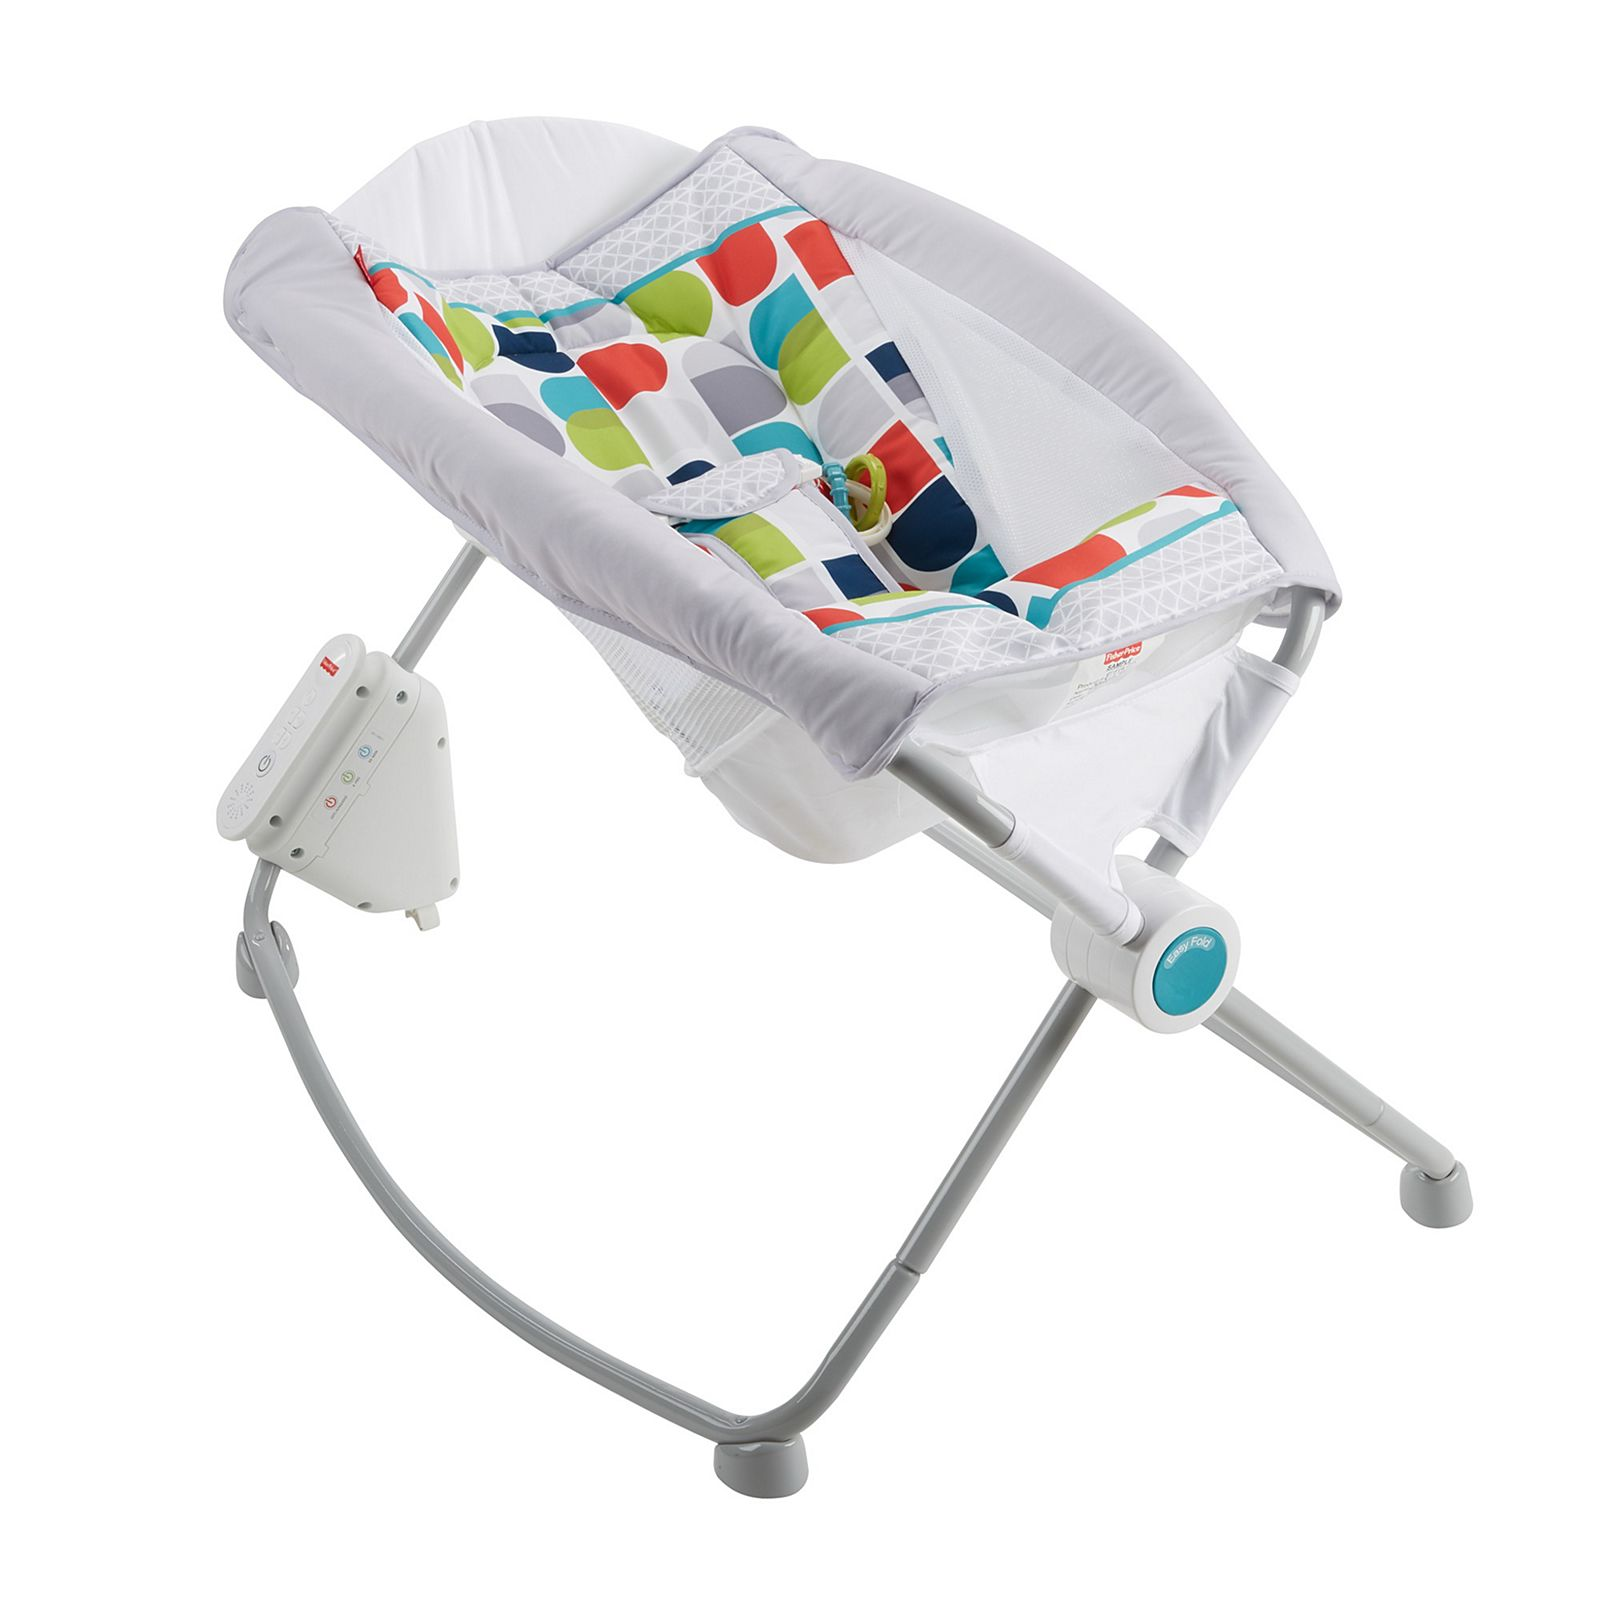 Fisher Price Auto Rock N Play Sleeper